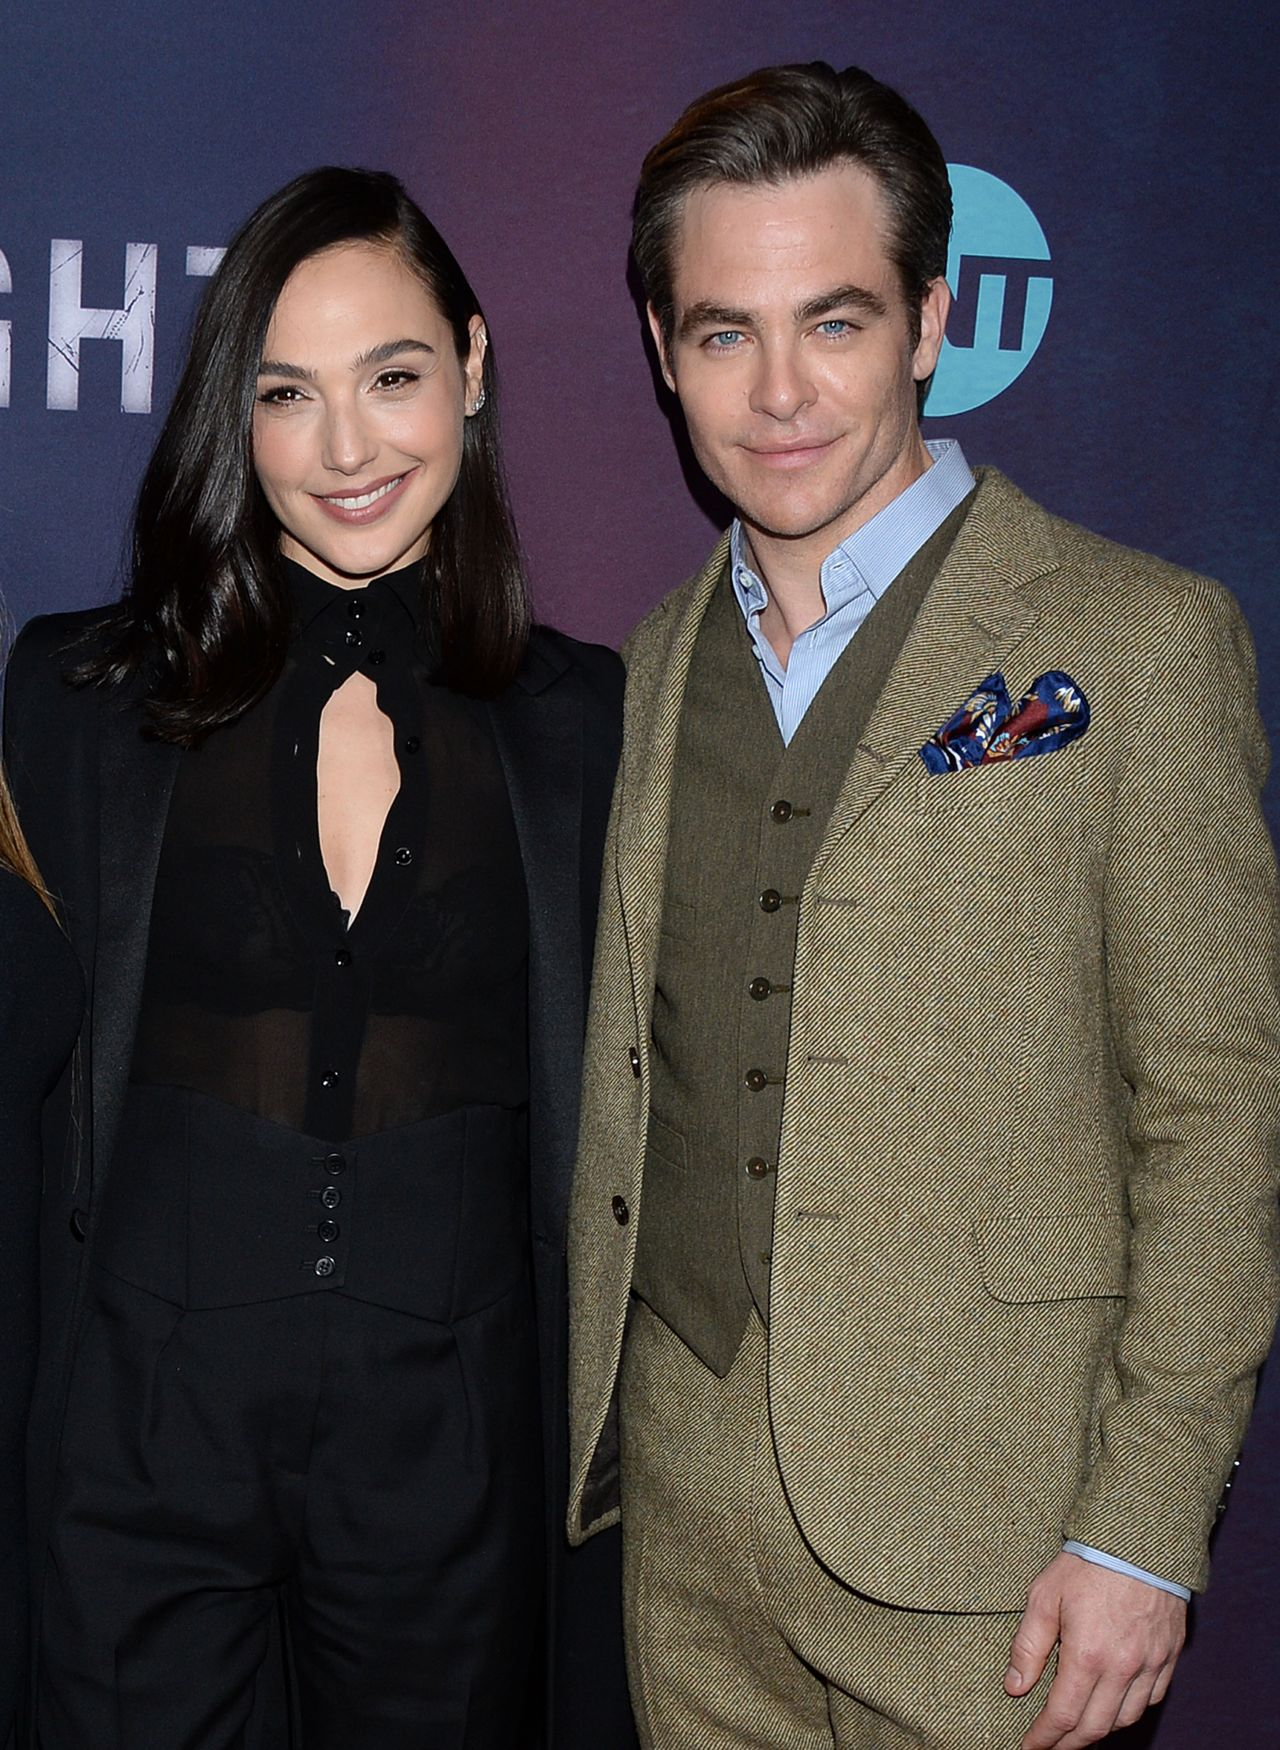 https://celebmafia.com/wp-content/uploads/2019/01/gal-gadot-i-am-the-night-premiere-in-hollywood-1.jpg